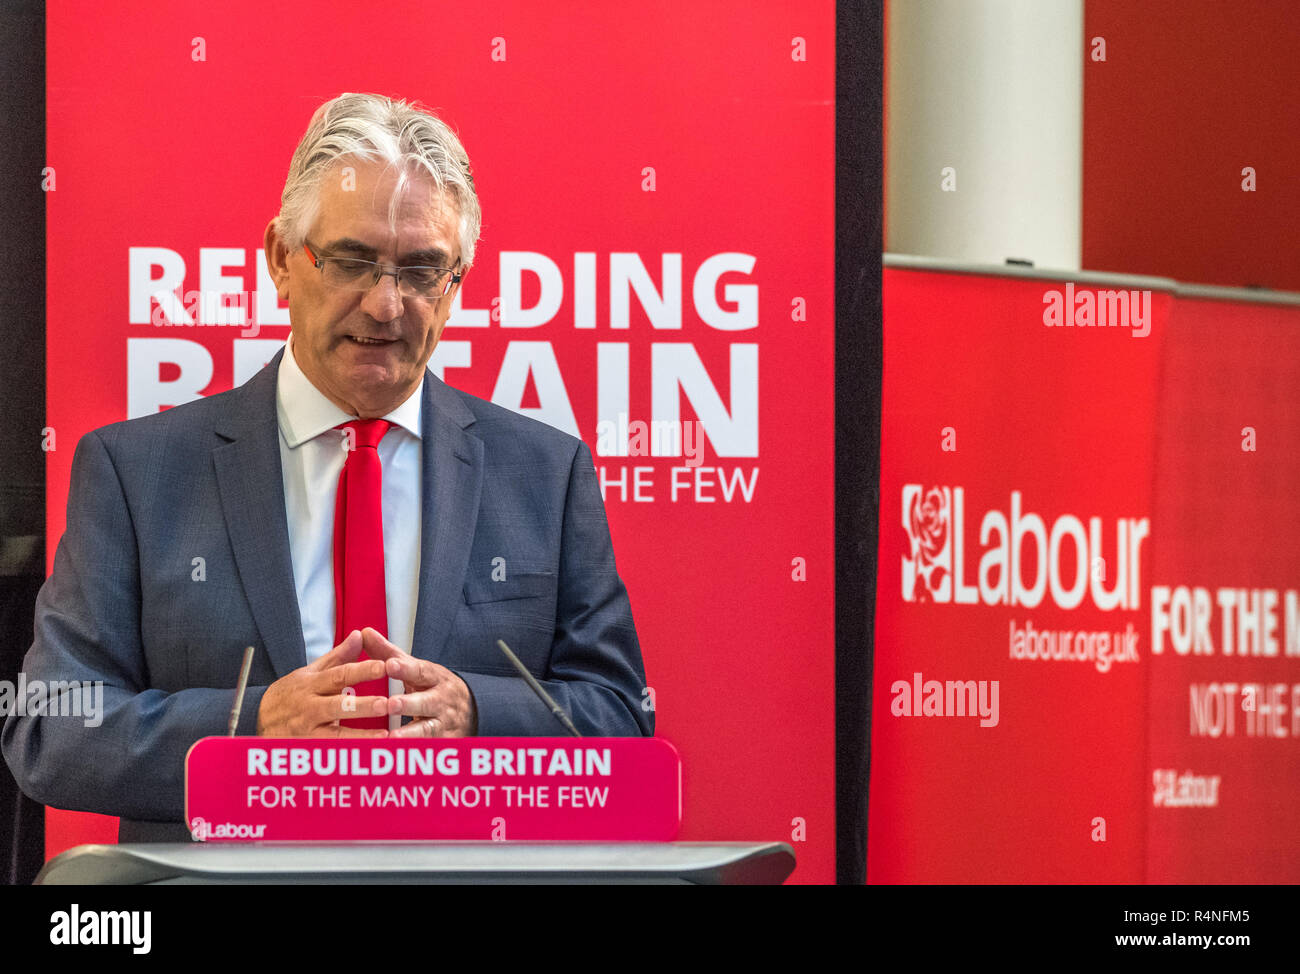 Paul Bradshaw Labour Mayoral candidate for Mansfield 2019 election. - Stock Image